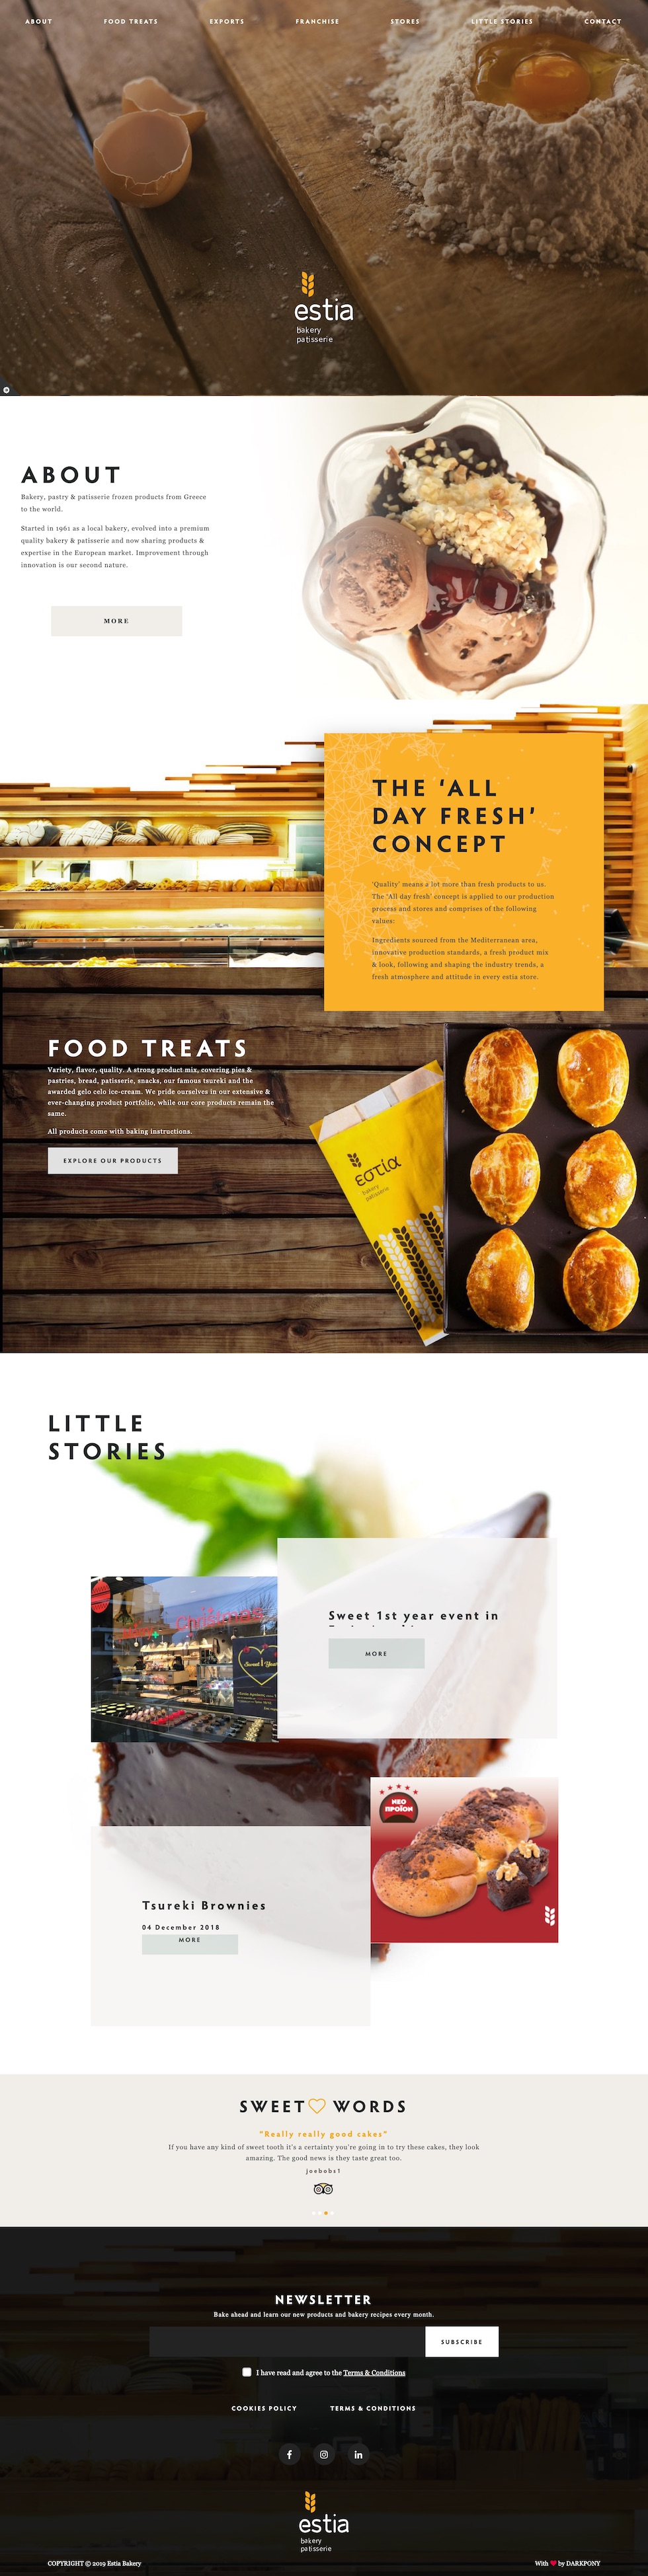 istoselida-estia-bakery-website-design-development